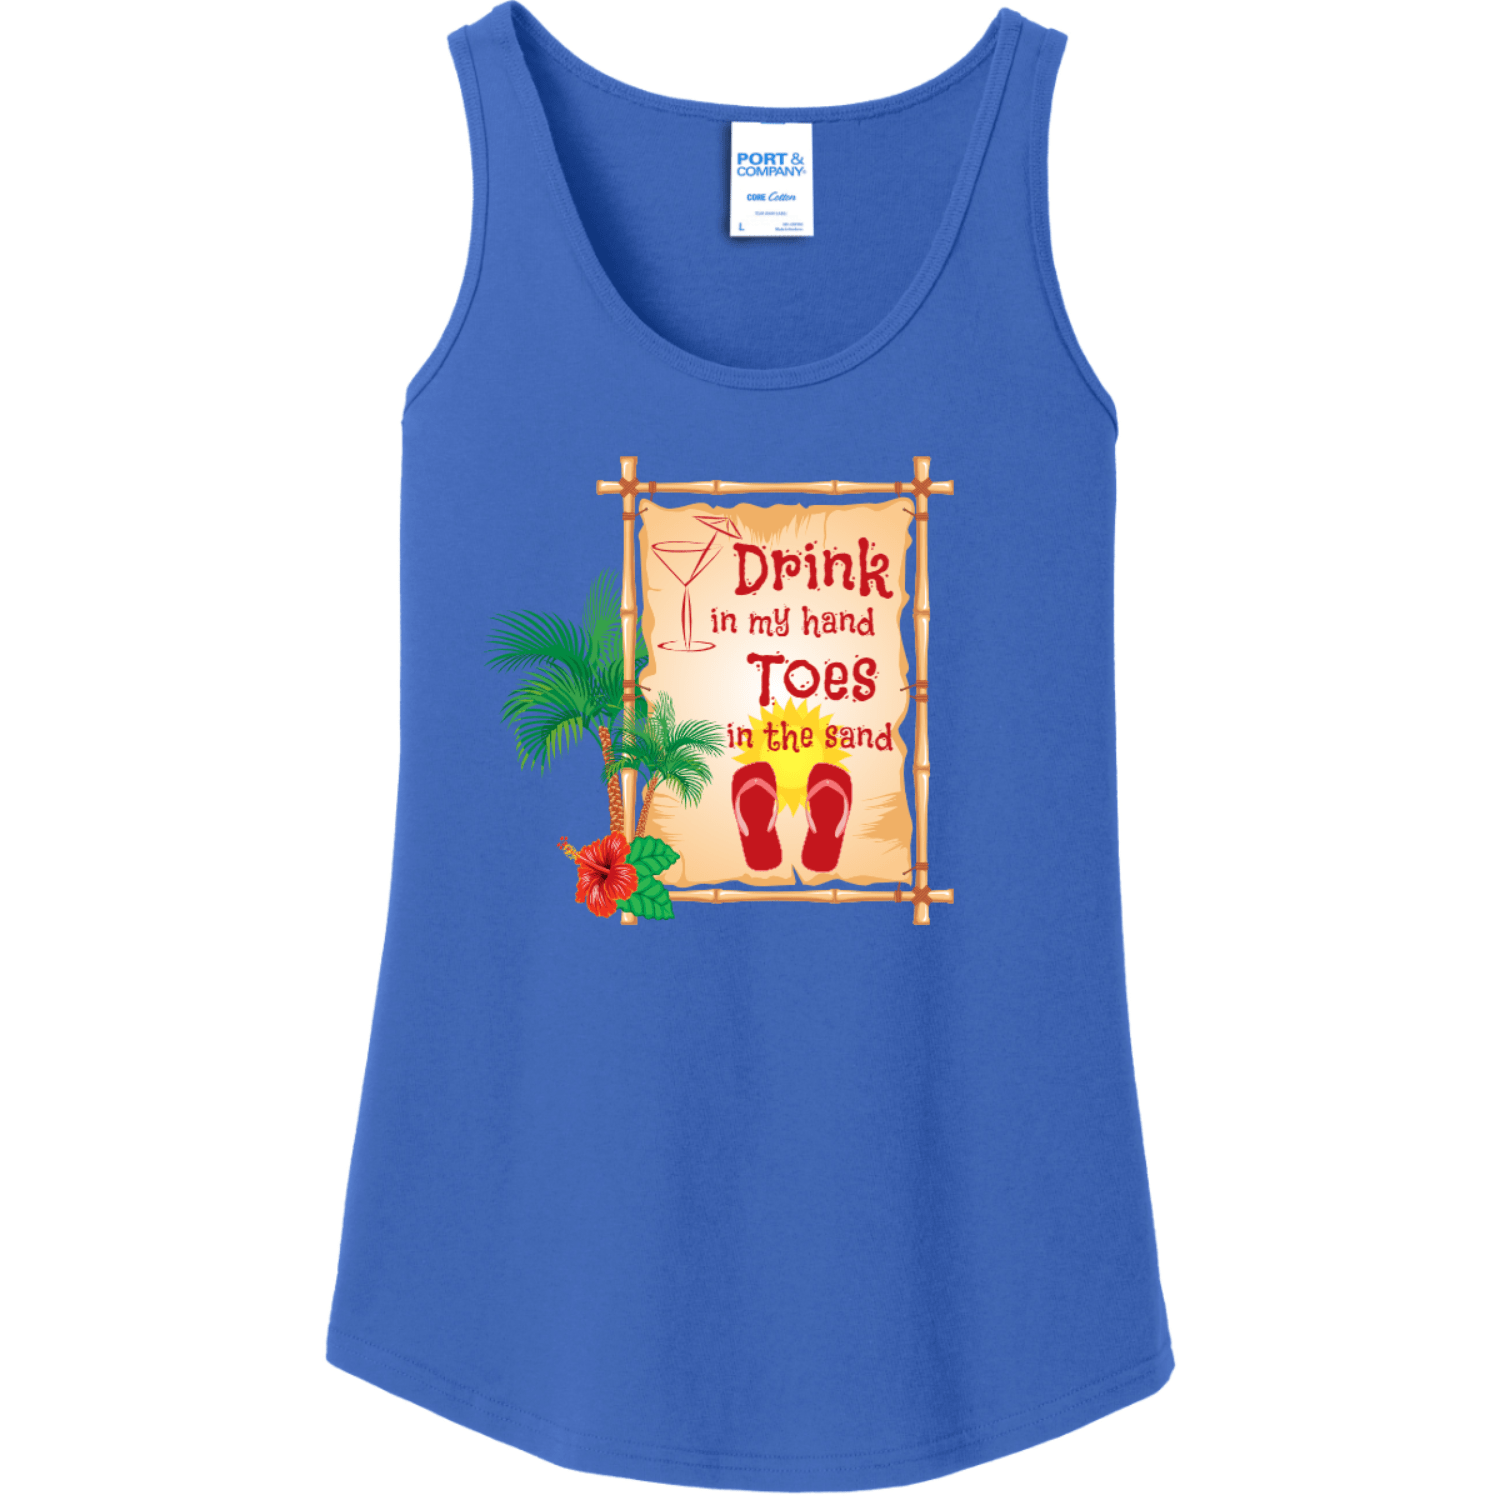 Drink In My Hand Toes In The Sand Tank Top Royal Port And Company Ladies Tank Top LPC54TT